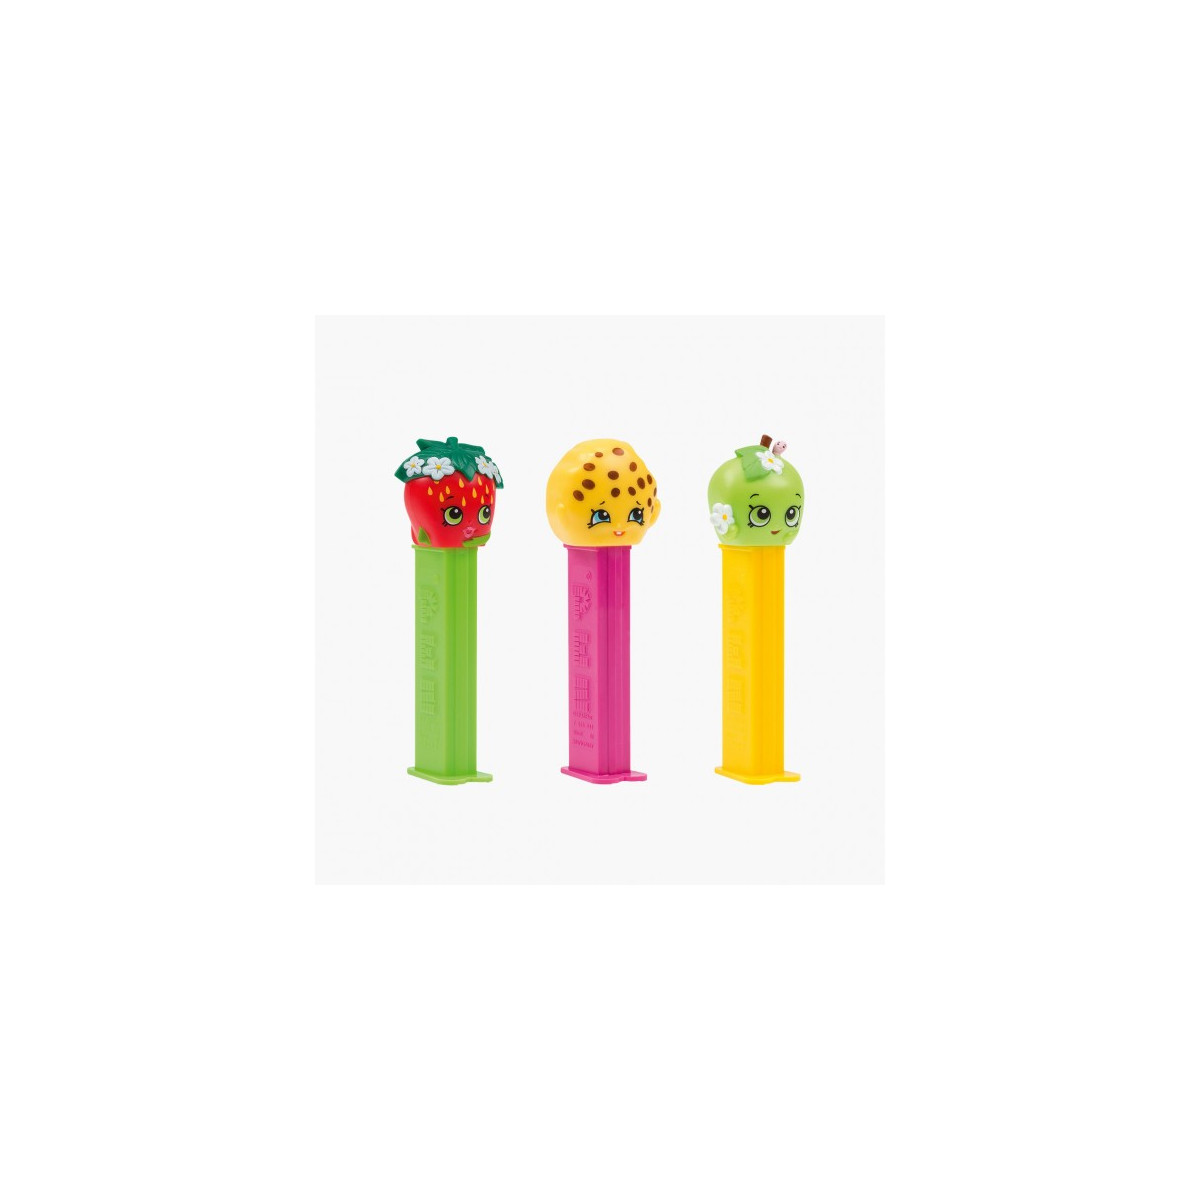 x1 PEZ Shopkins